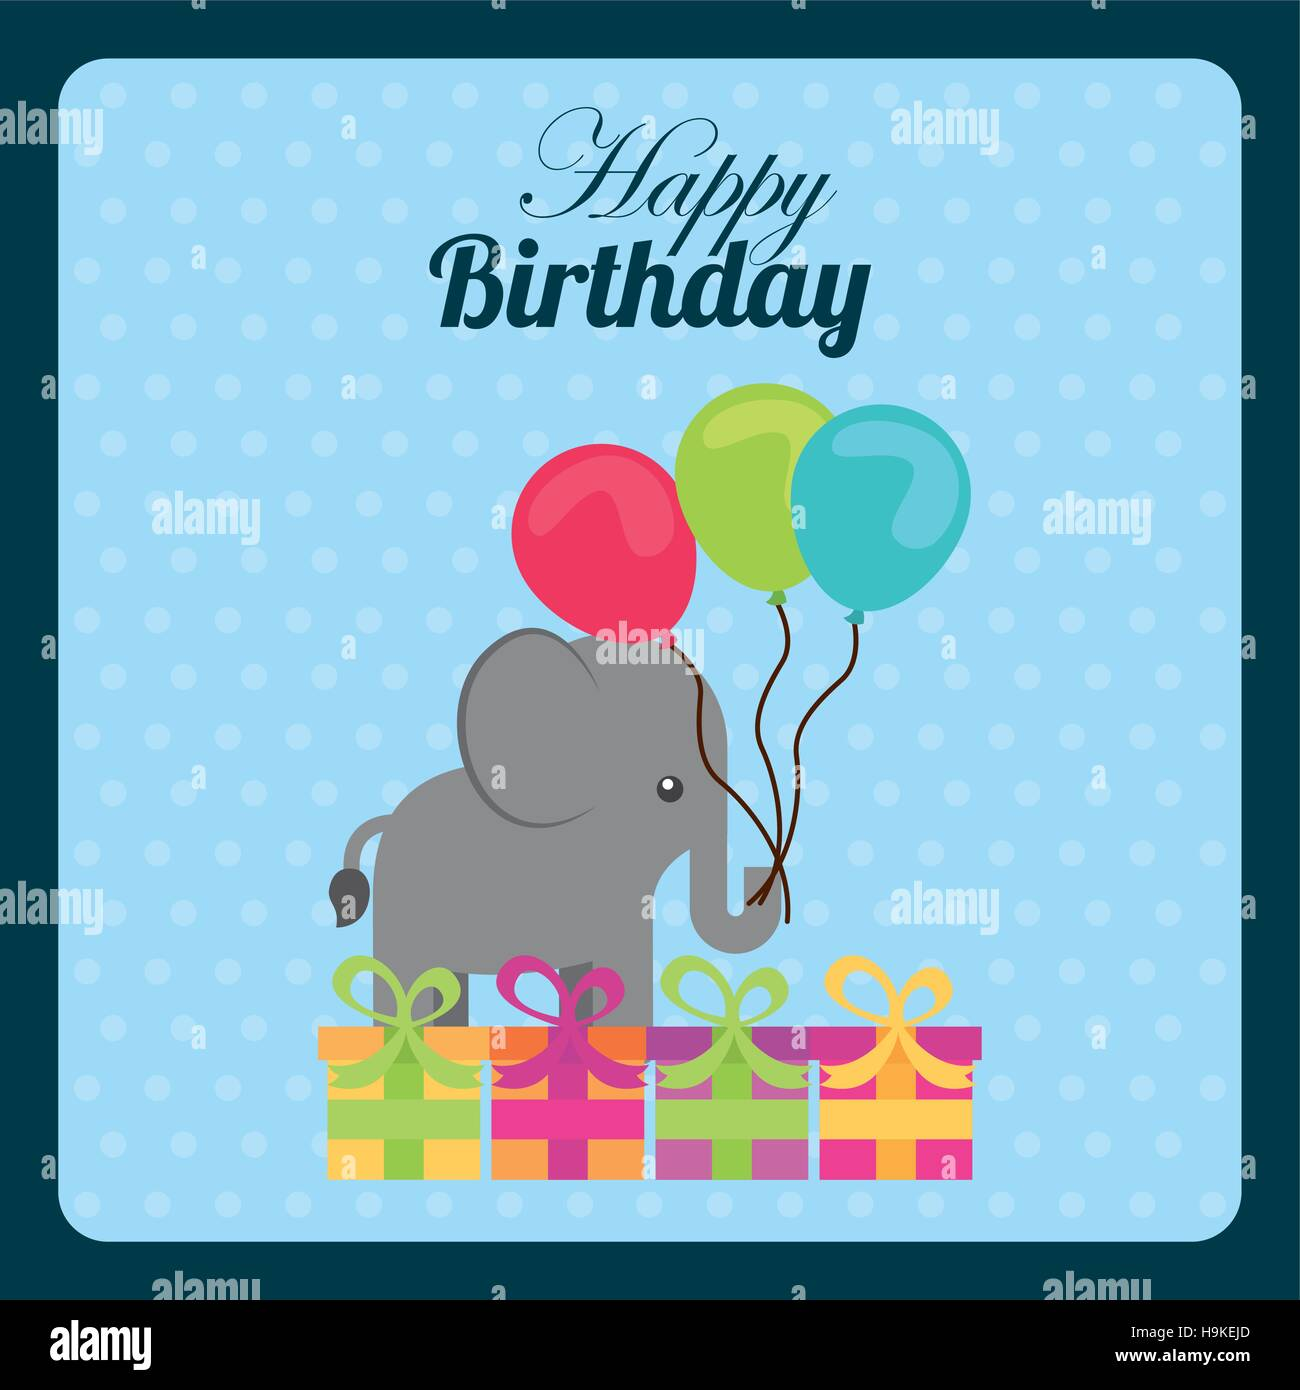 Happy Birthday Card With Cute Elephant Balloons And Gift Boxes Over Blue Background Colorful Design Vector Illustration